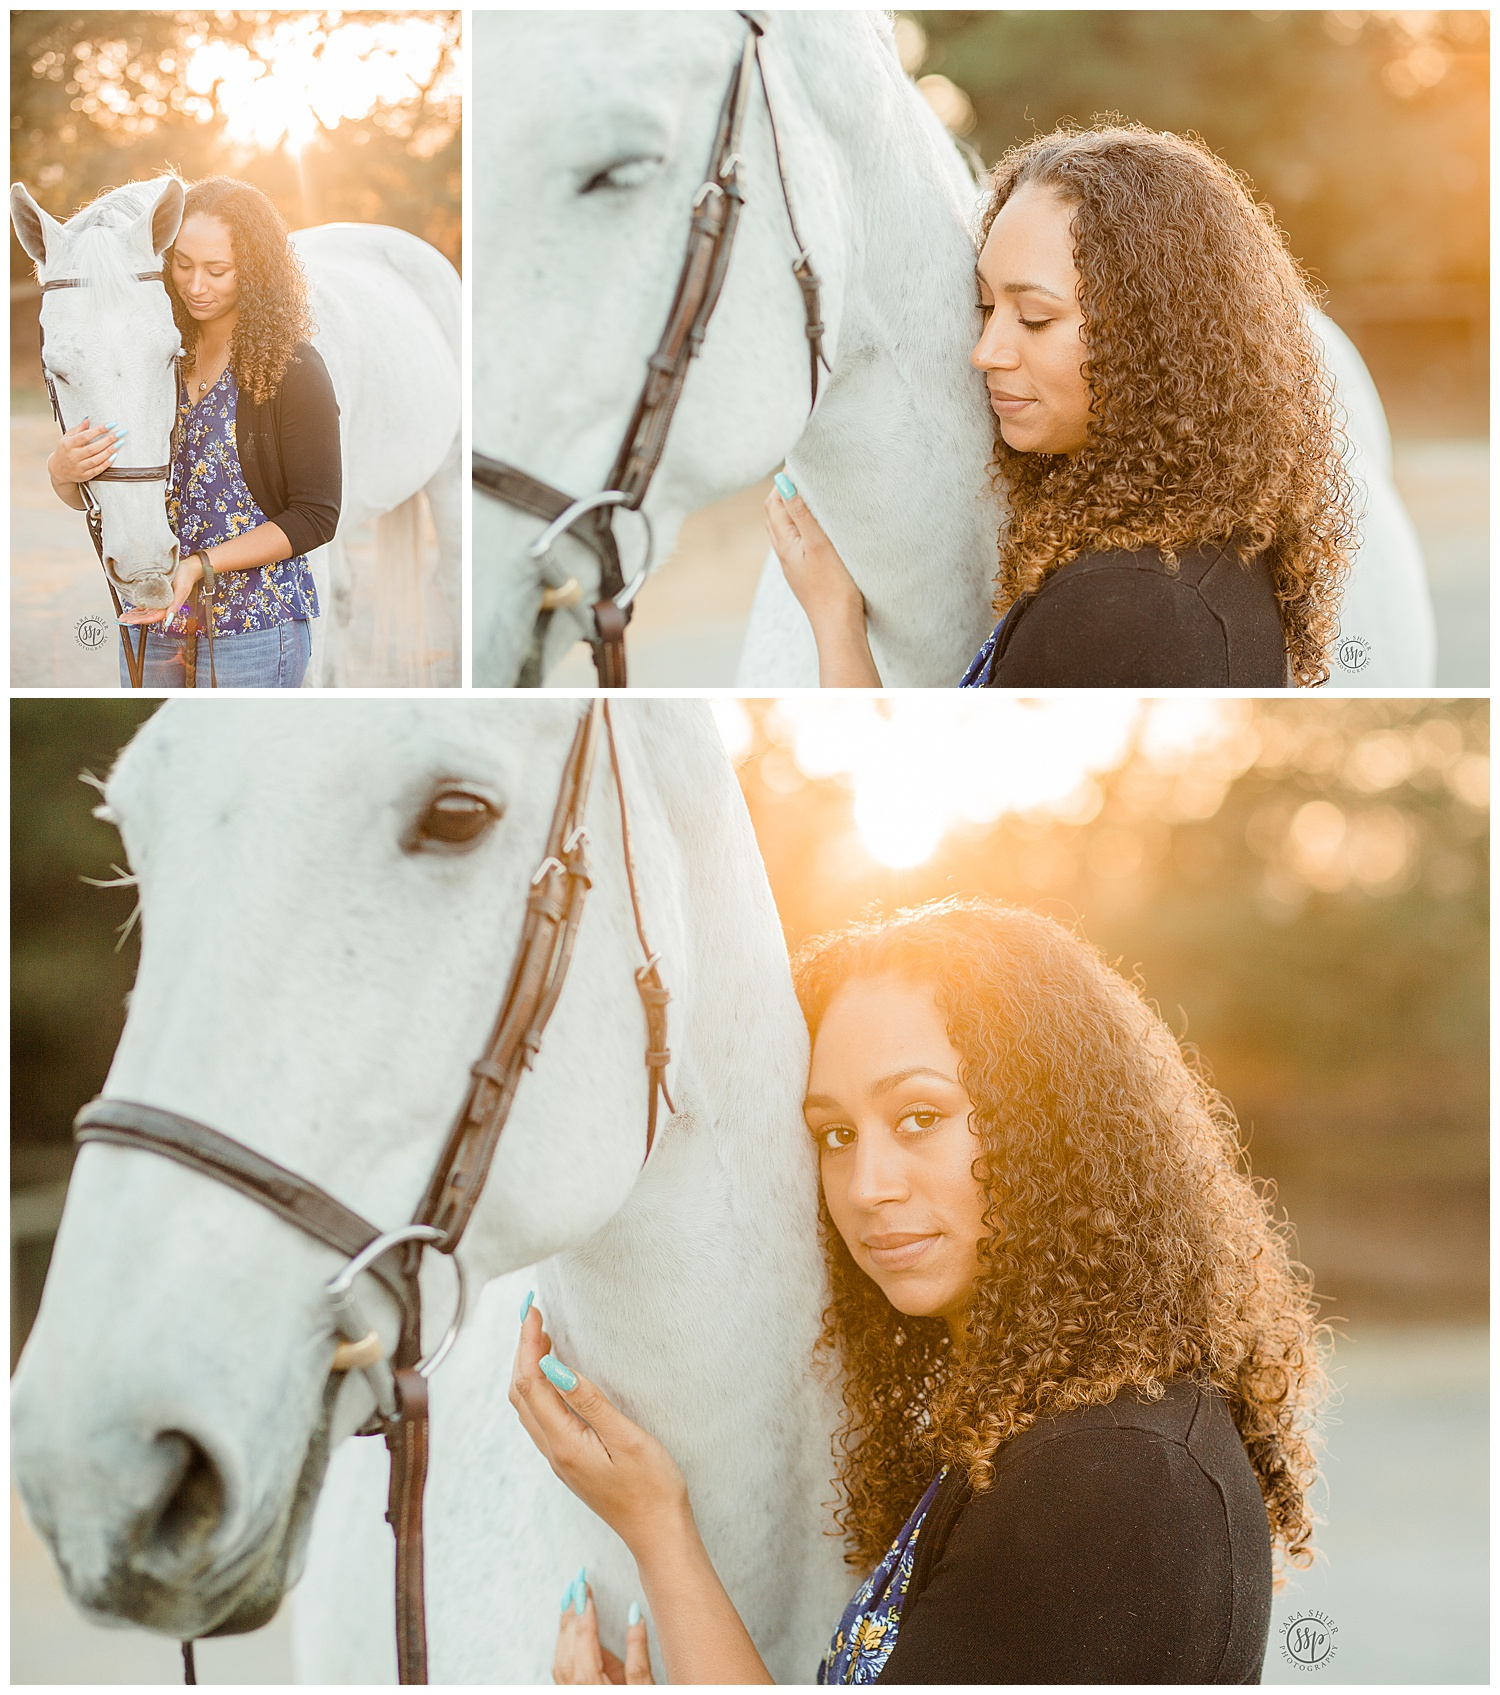 Black Background Horse Rider Equine Photographer Southern California Sara Shier Photography SoCal Equestrian Cowgirl_0251.jpg